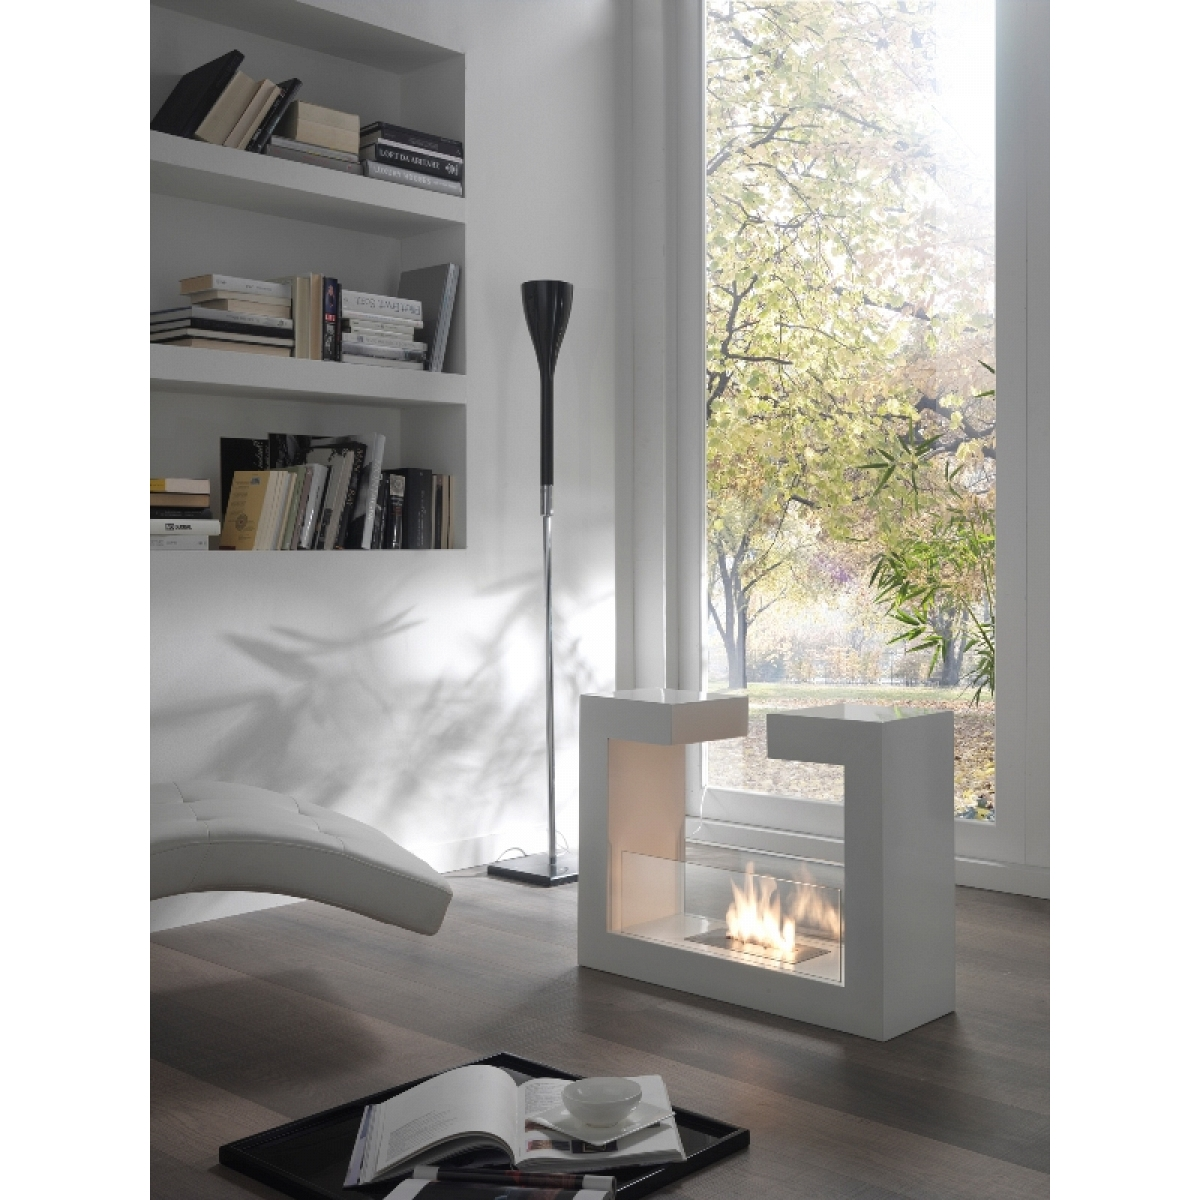 bioethanol kamine zum verkauf auf verdegarden. Black Bedroom Furniture Sets. Home Design Ideas